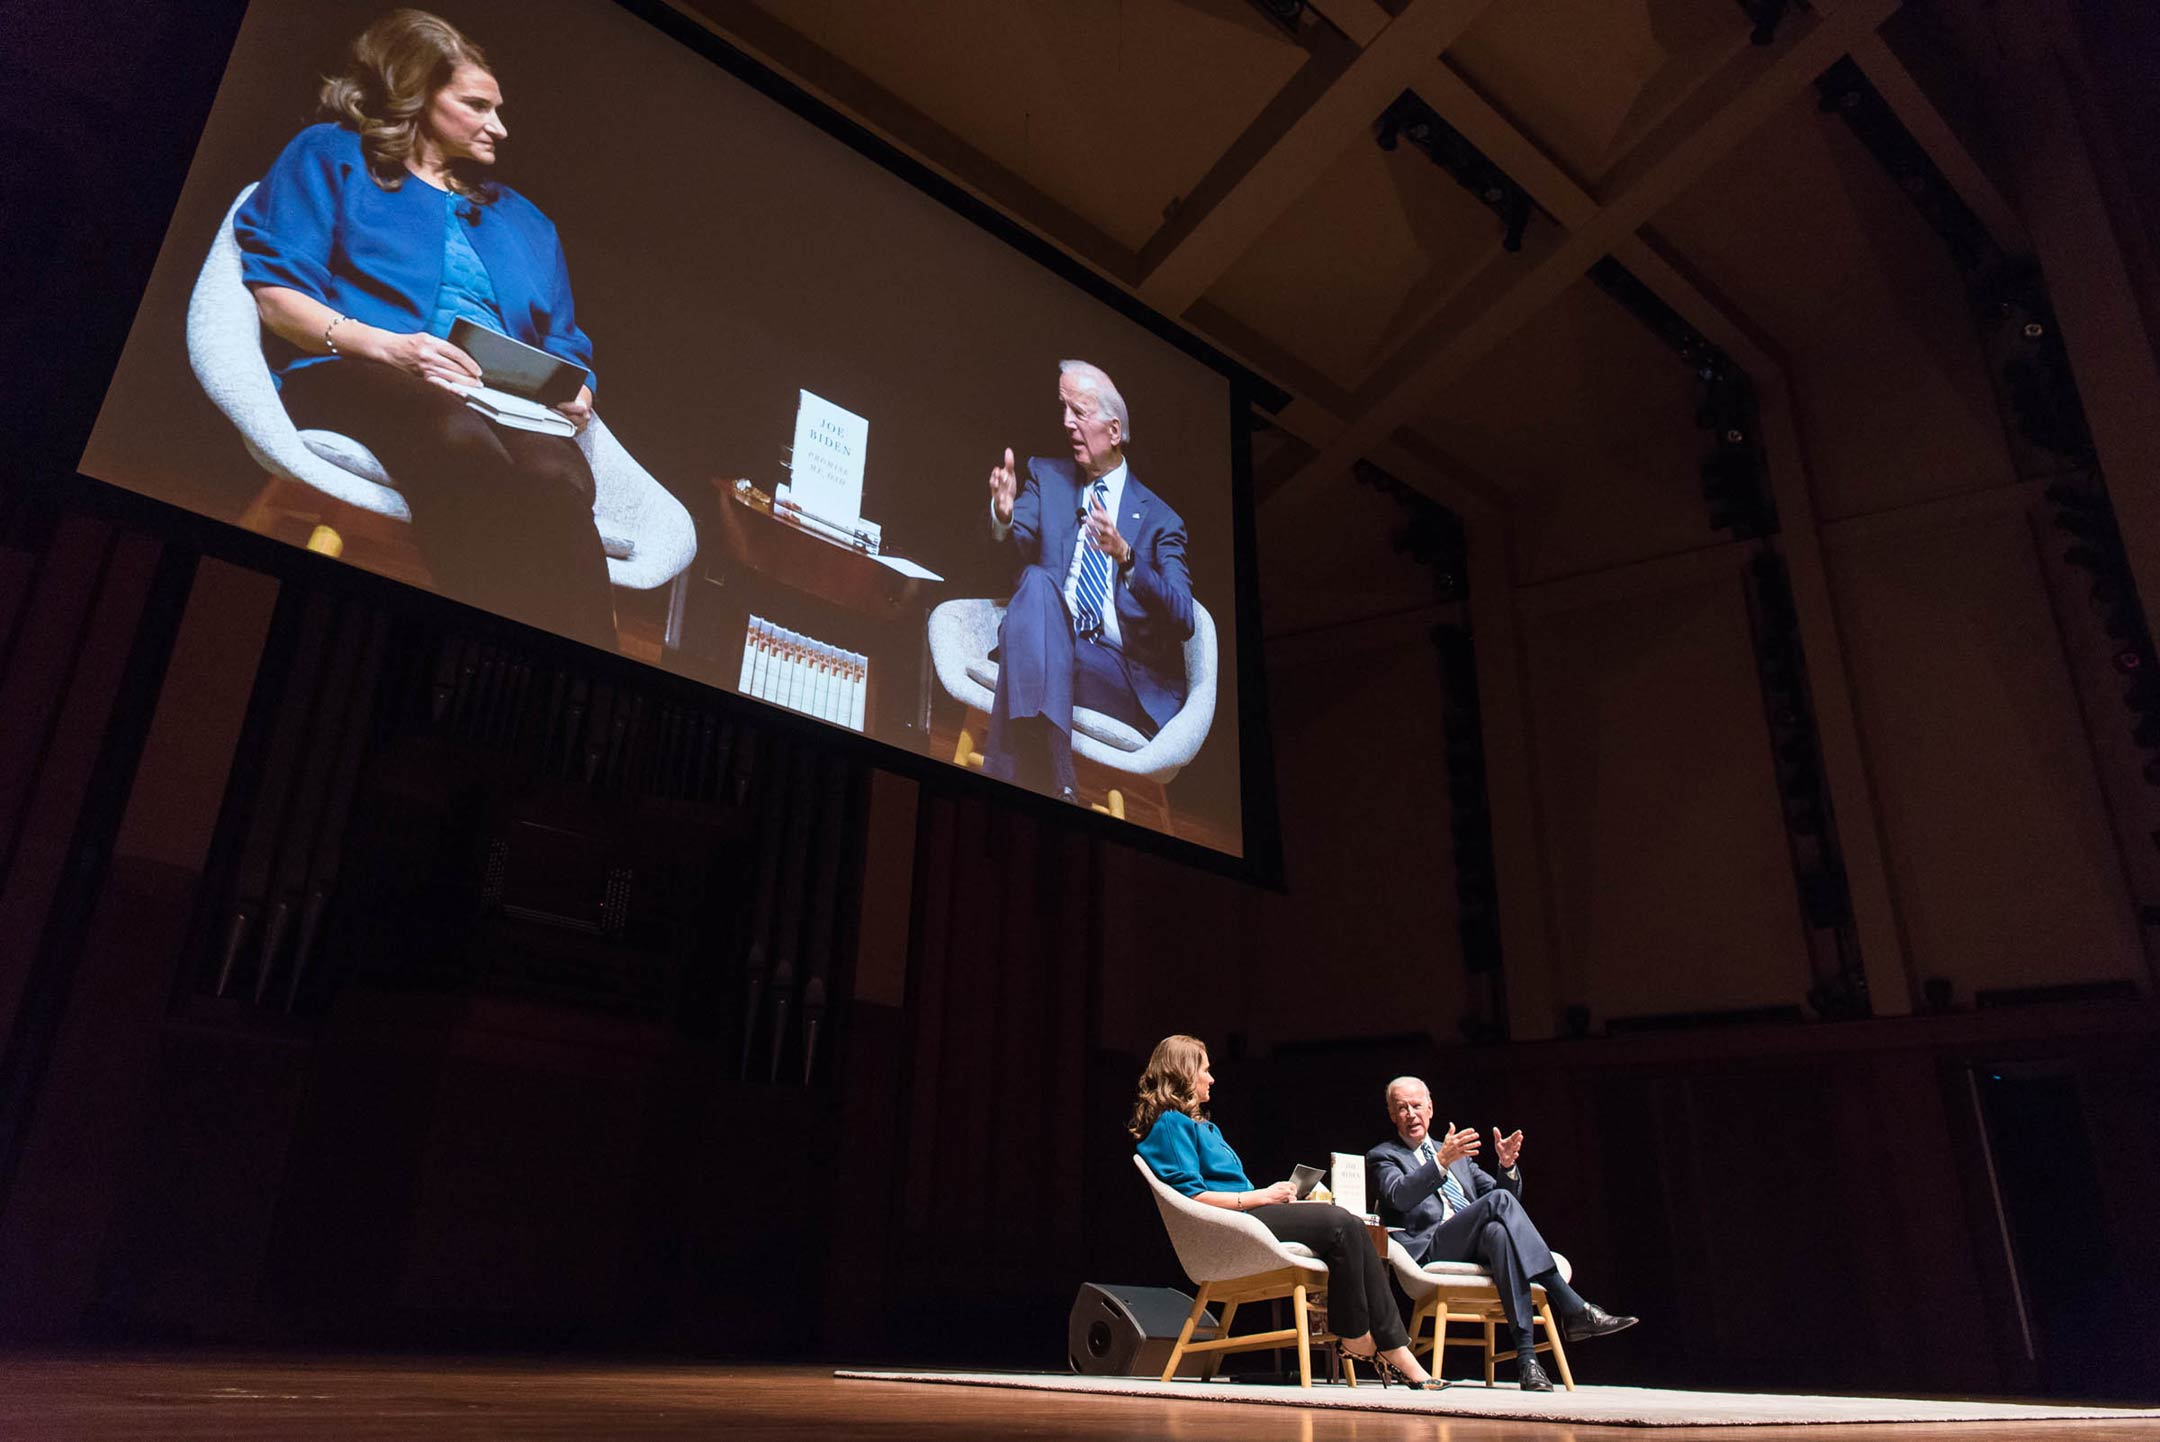 vice_president_joe_biden_melinda_gates_seattle_benaroya_hall_brandon_patoc.jpg